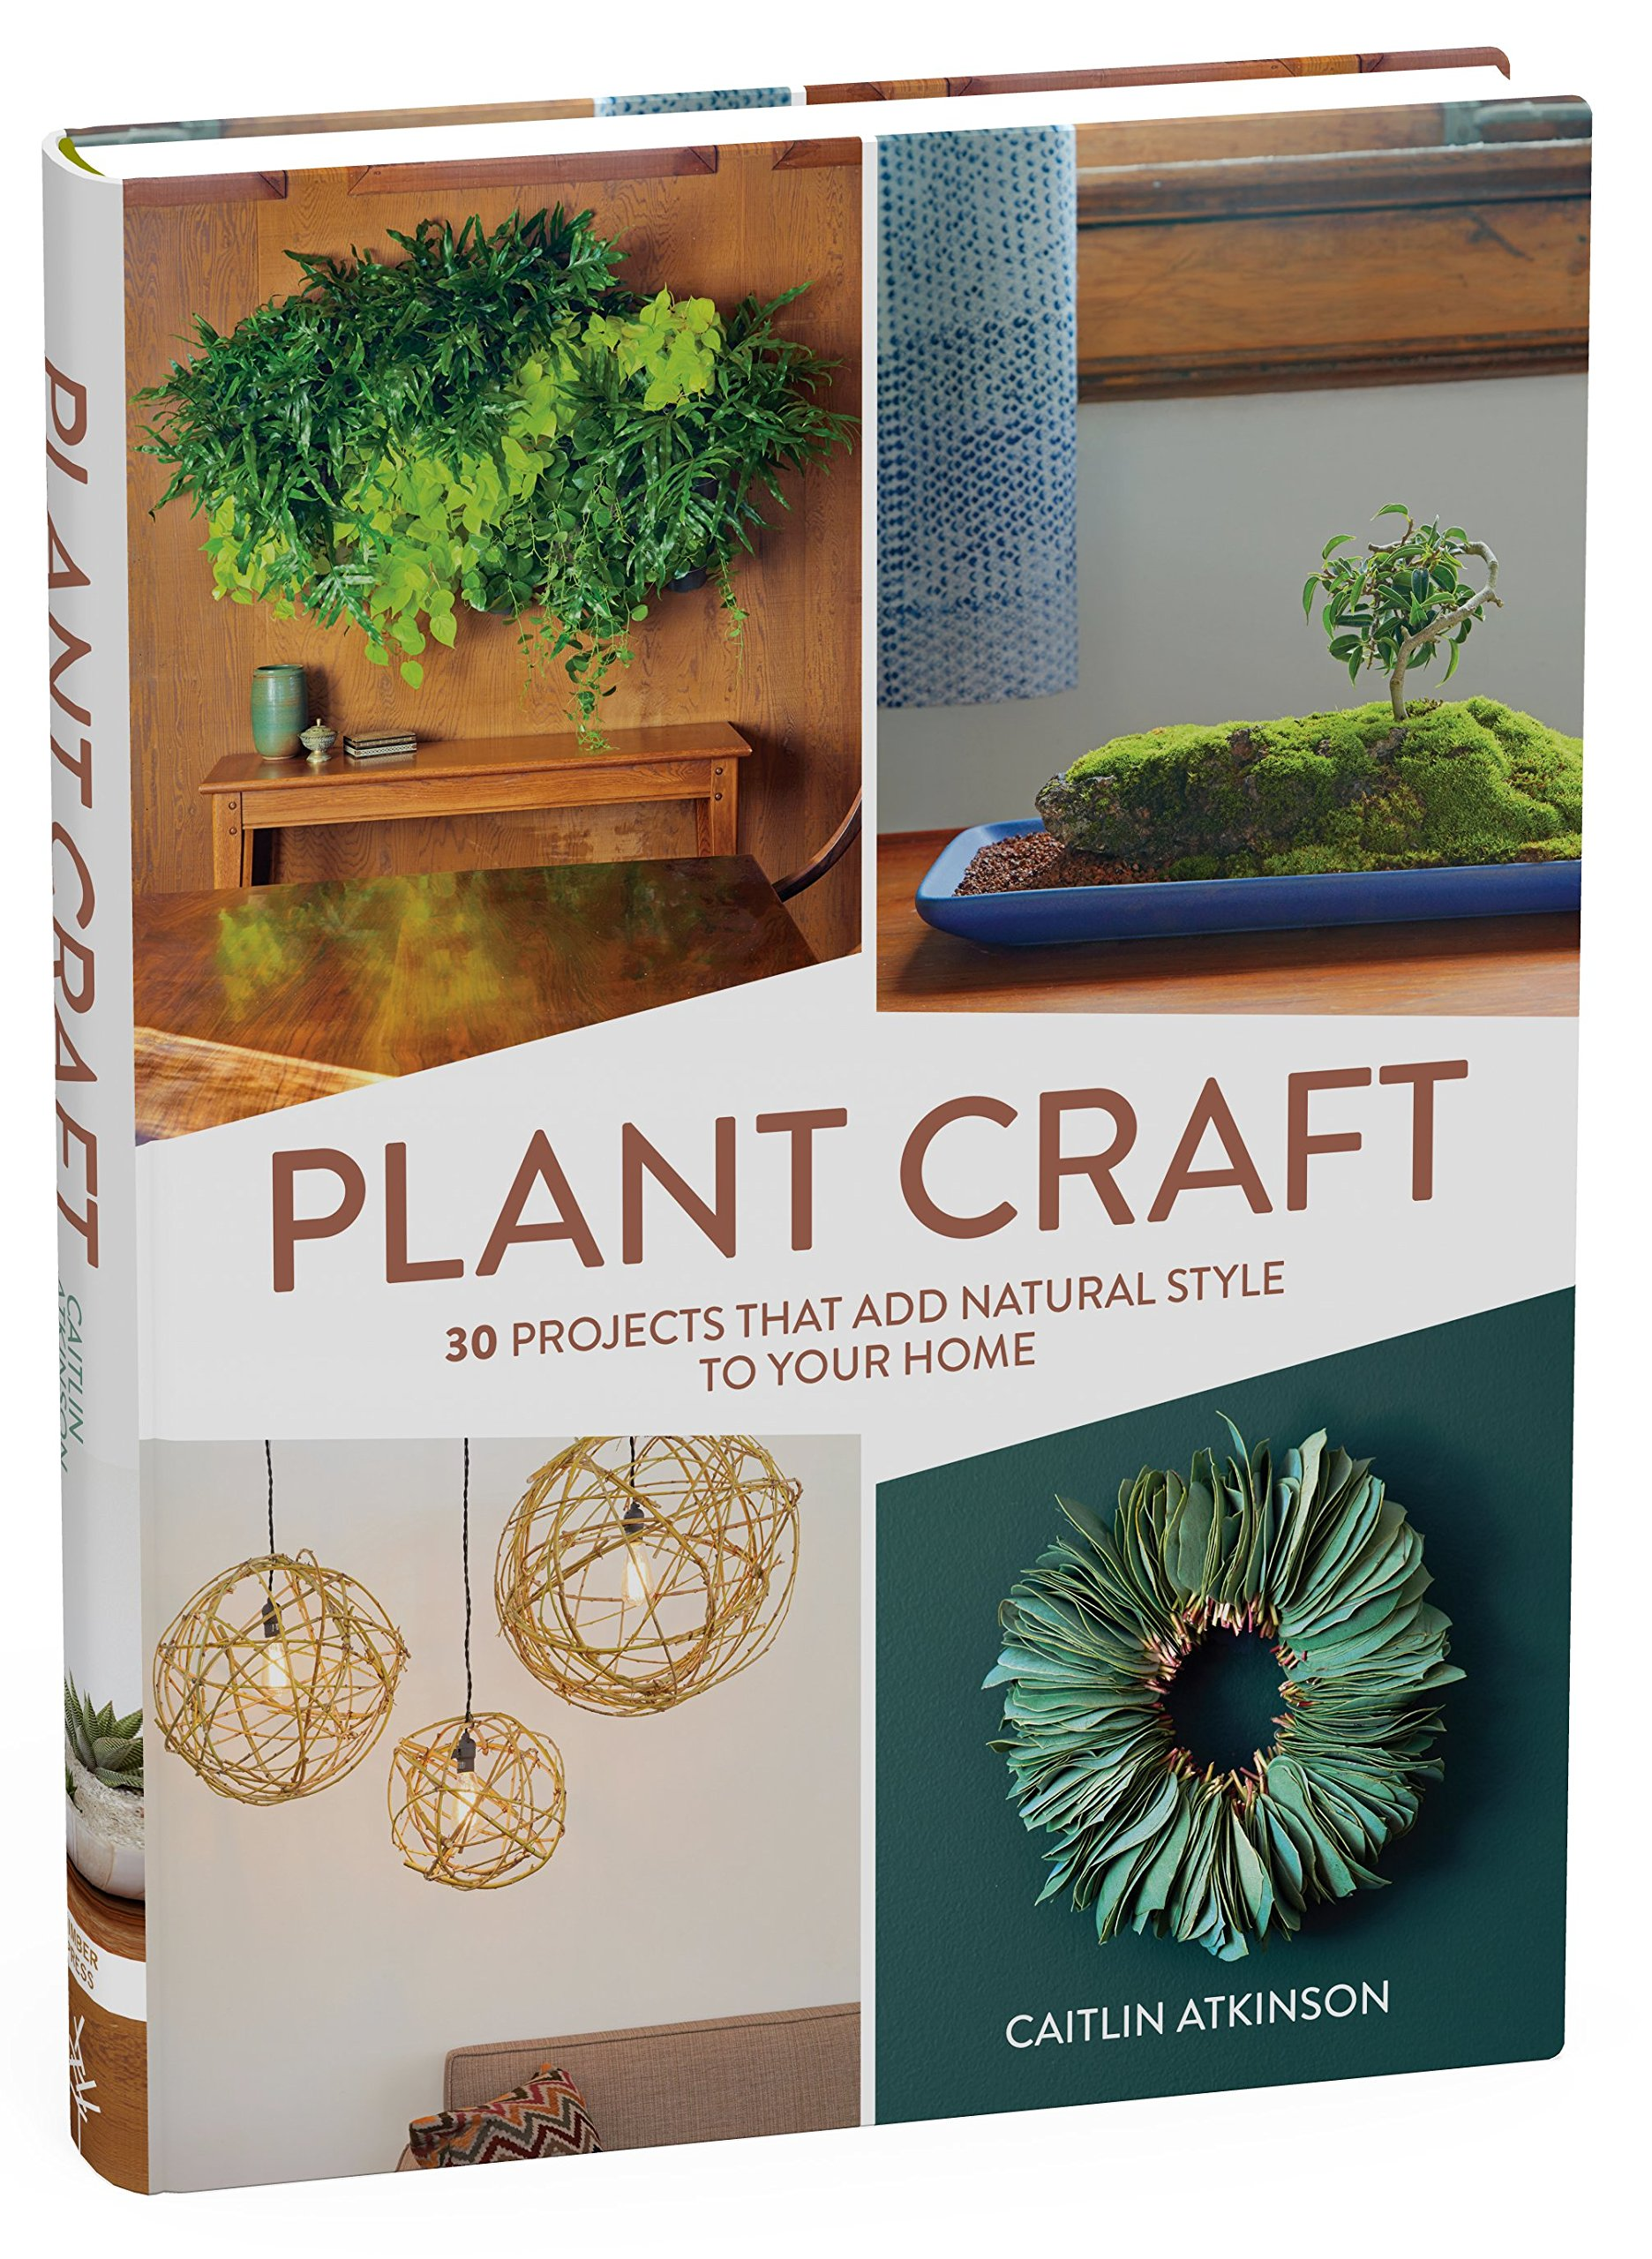 plant craft 30 projects that add natural style to your home caitlin atkinson amazoncom books